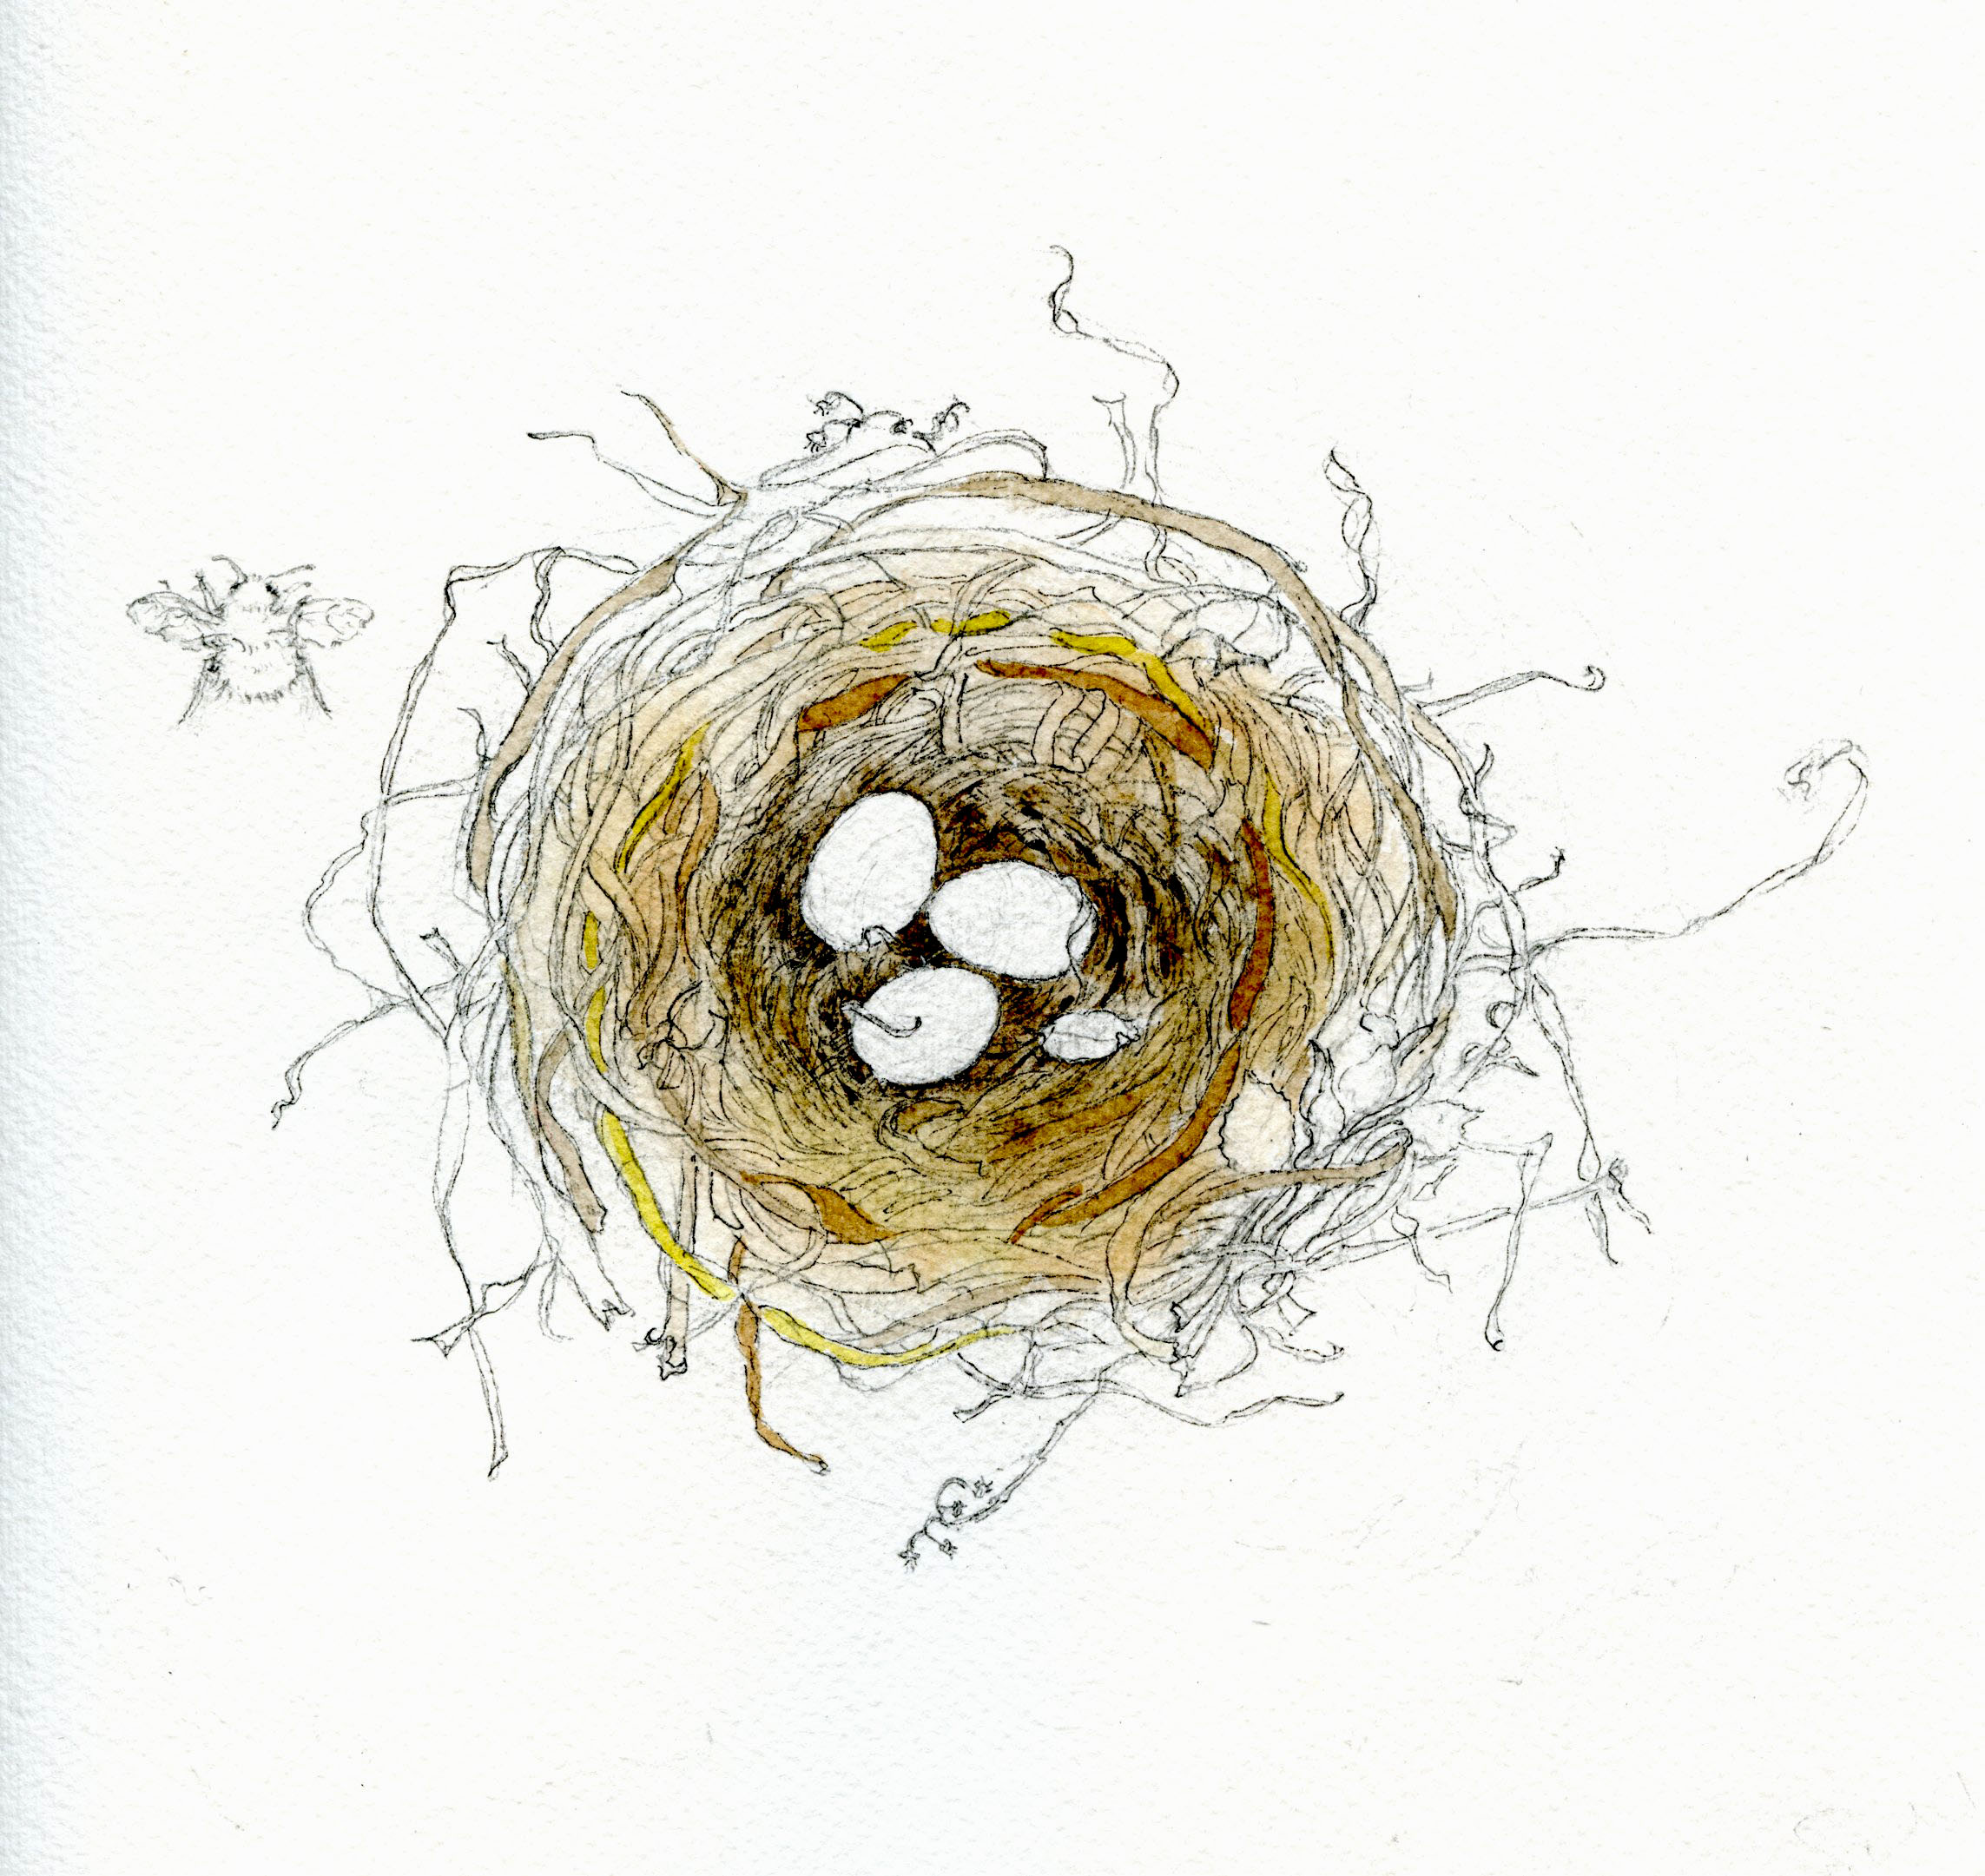 watercolor colors in nest